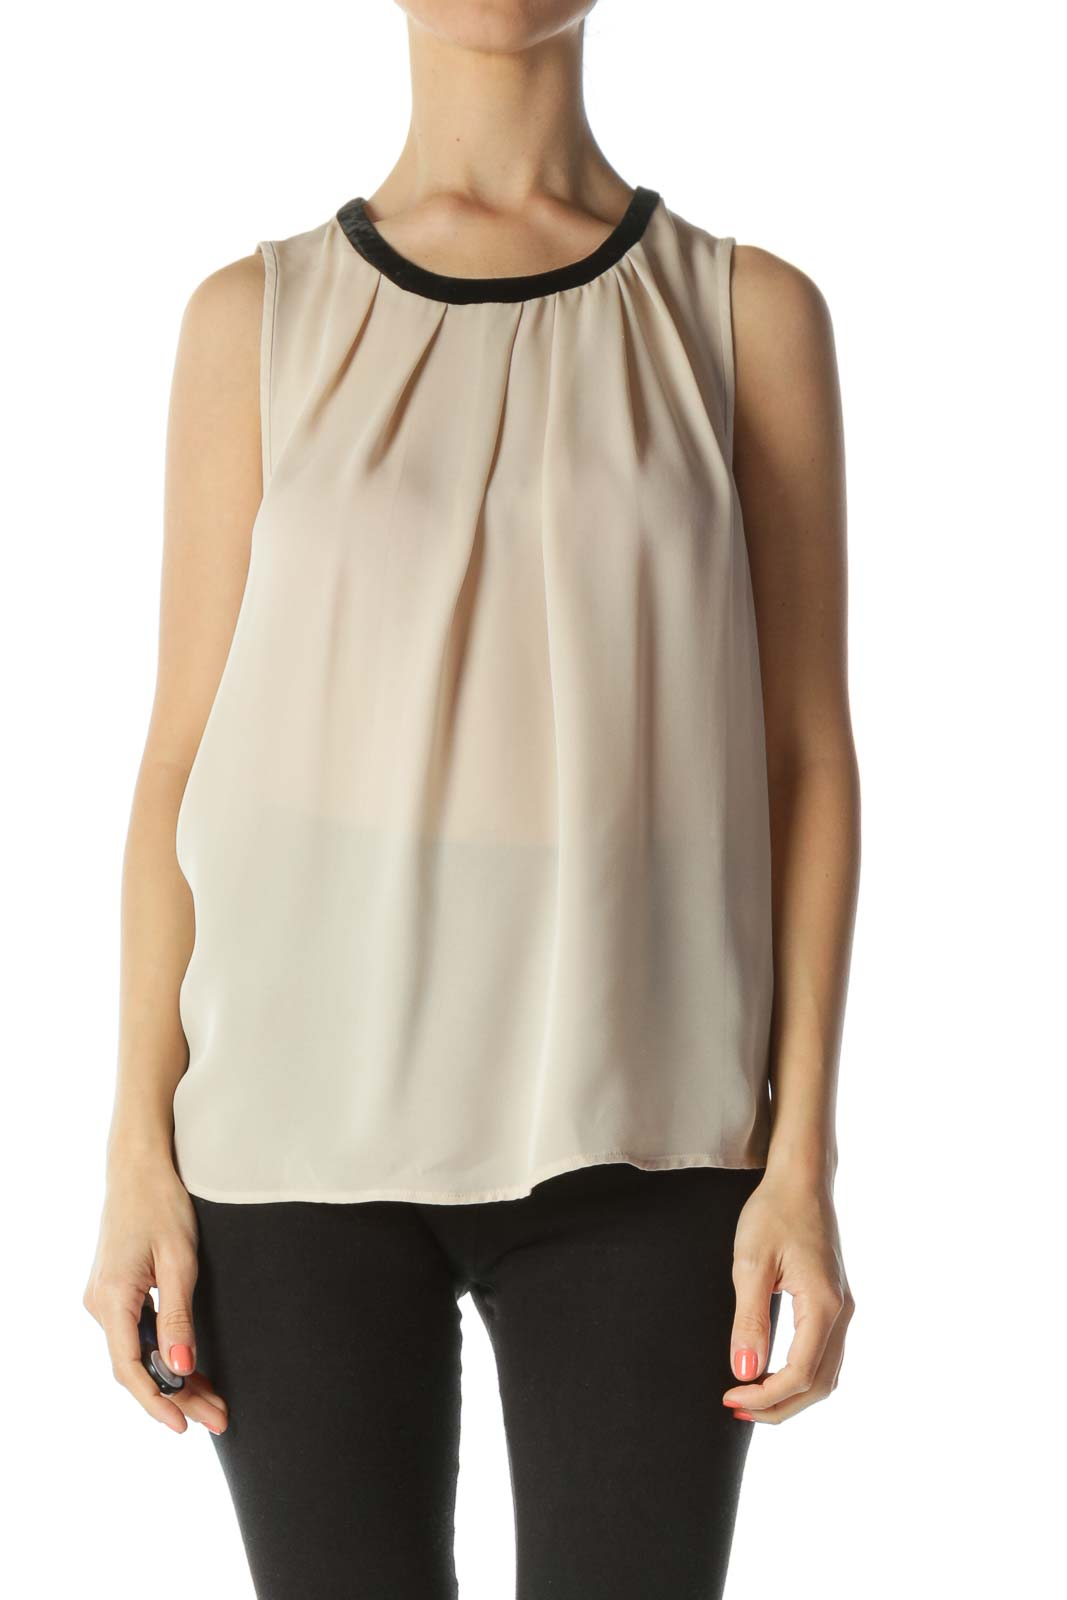 Beige Silk Sleeveless Blouse with Black Velvet Neck-TIe